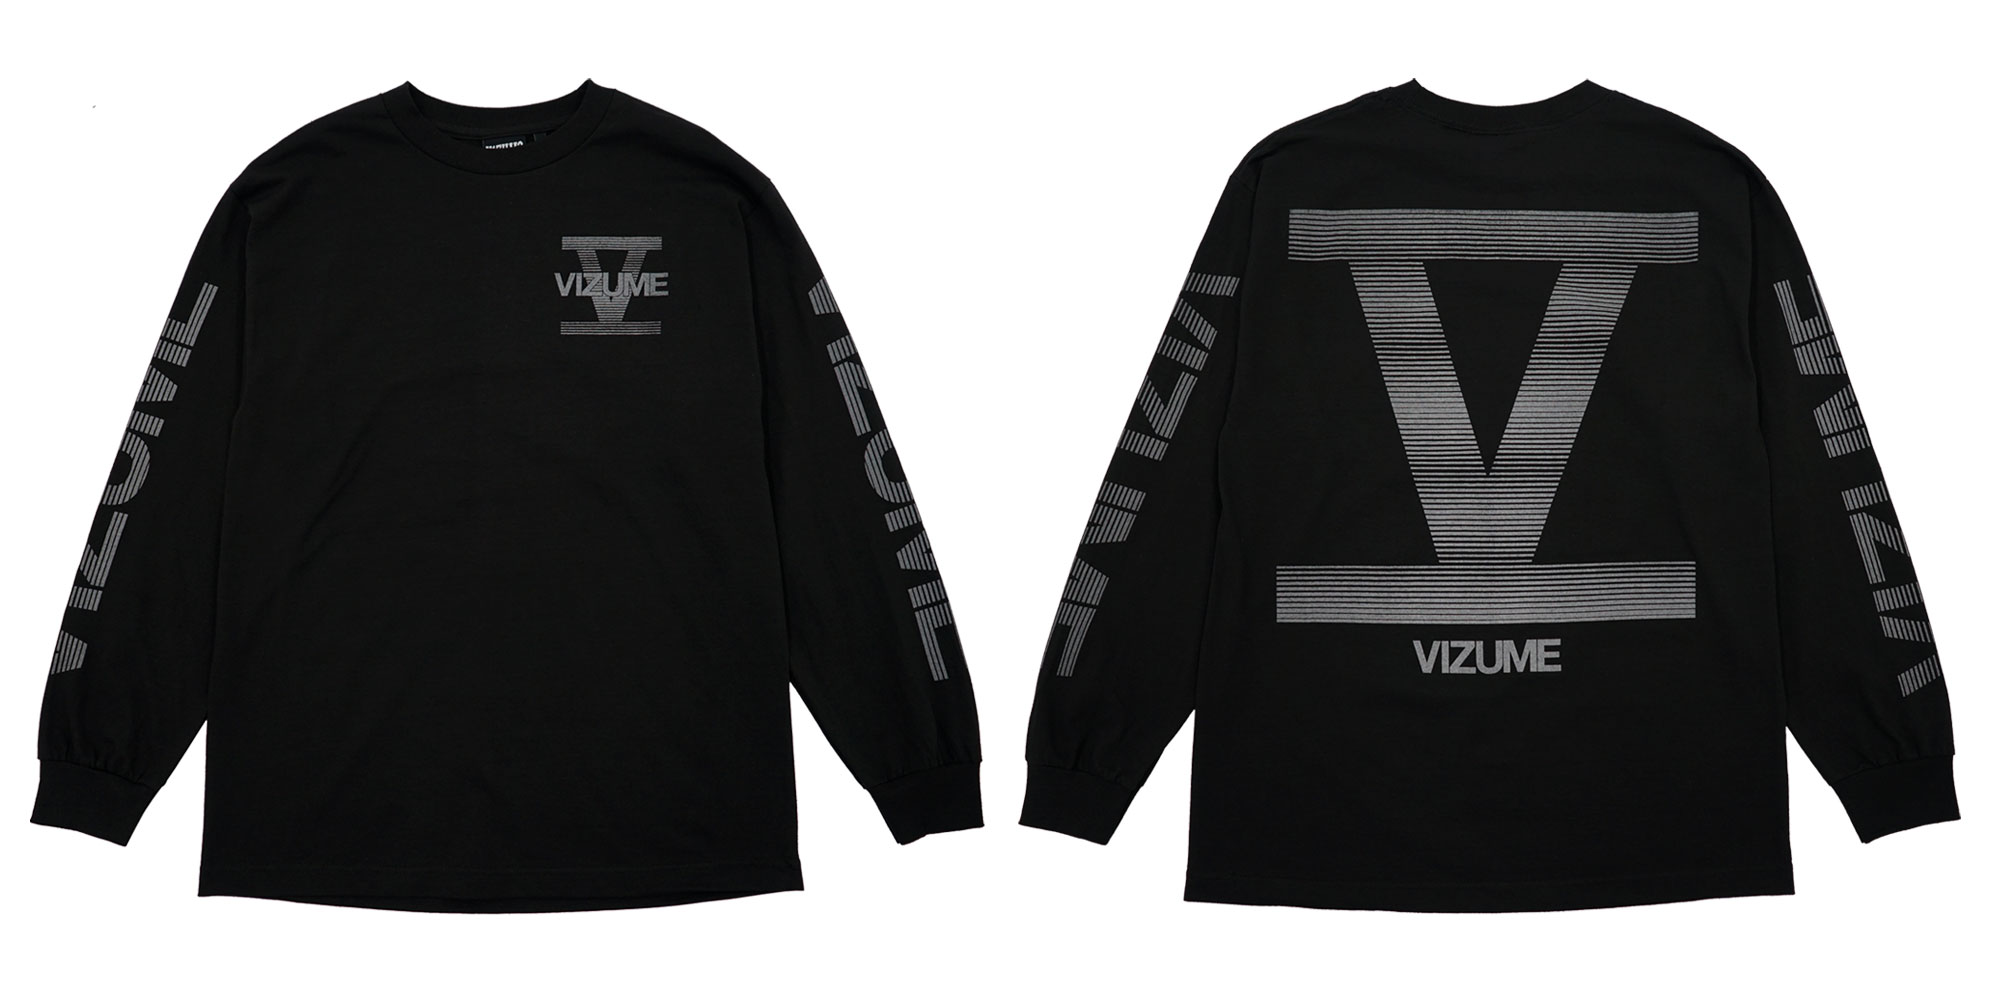 Vizume 5 Year Long Sleeve Tee with 3M Print in Black